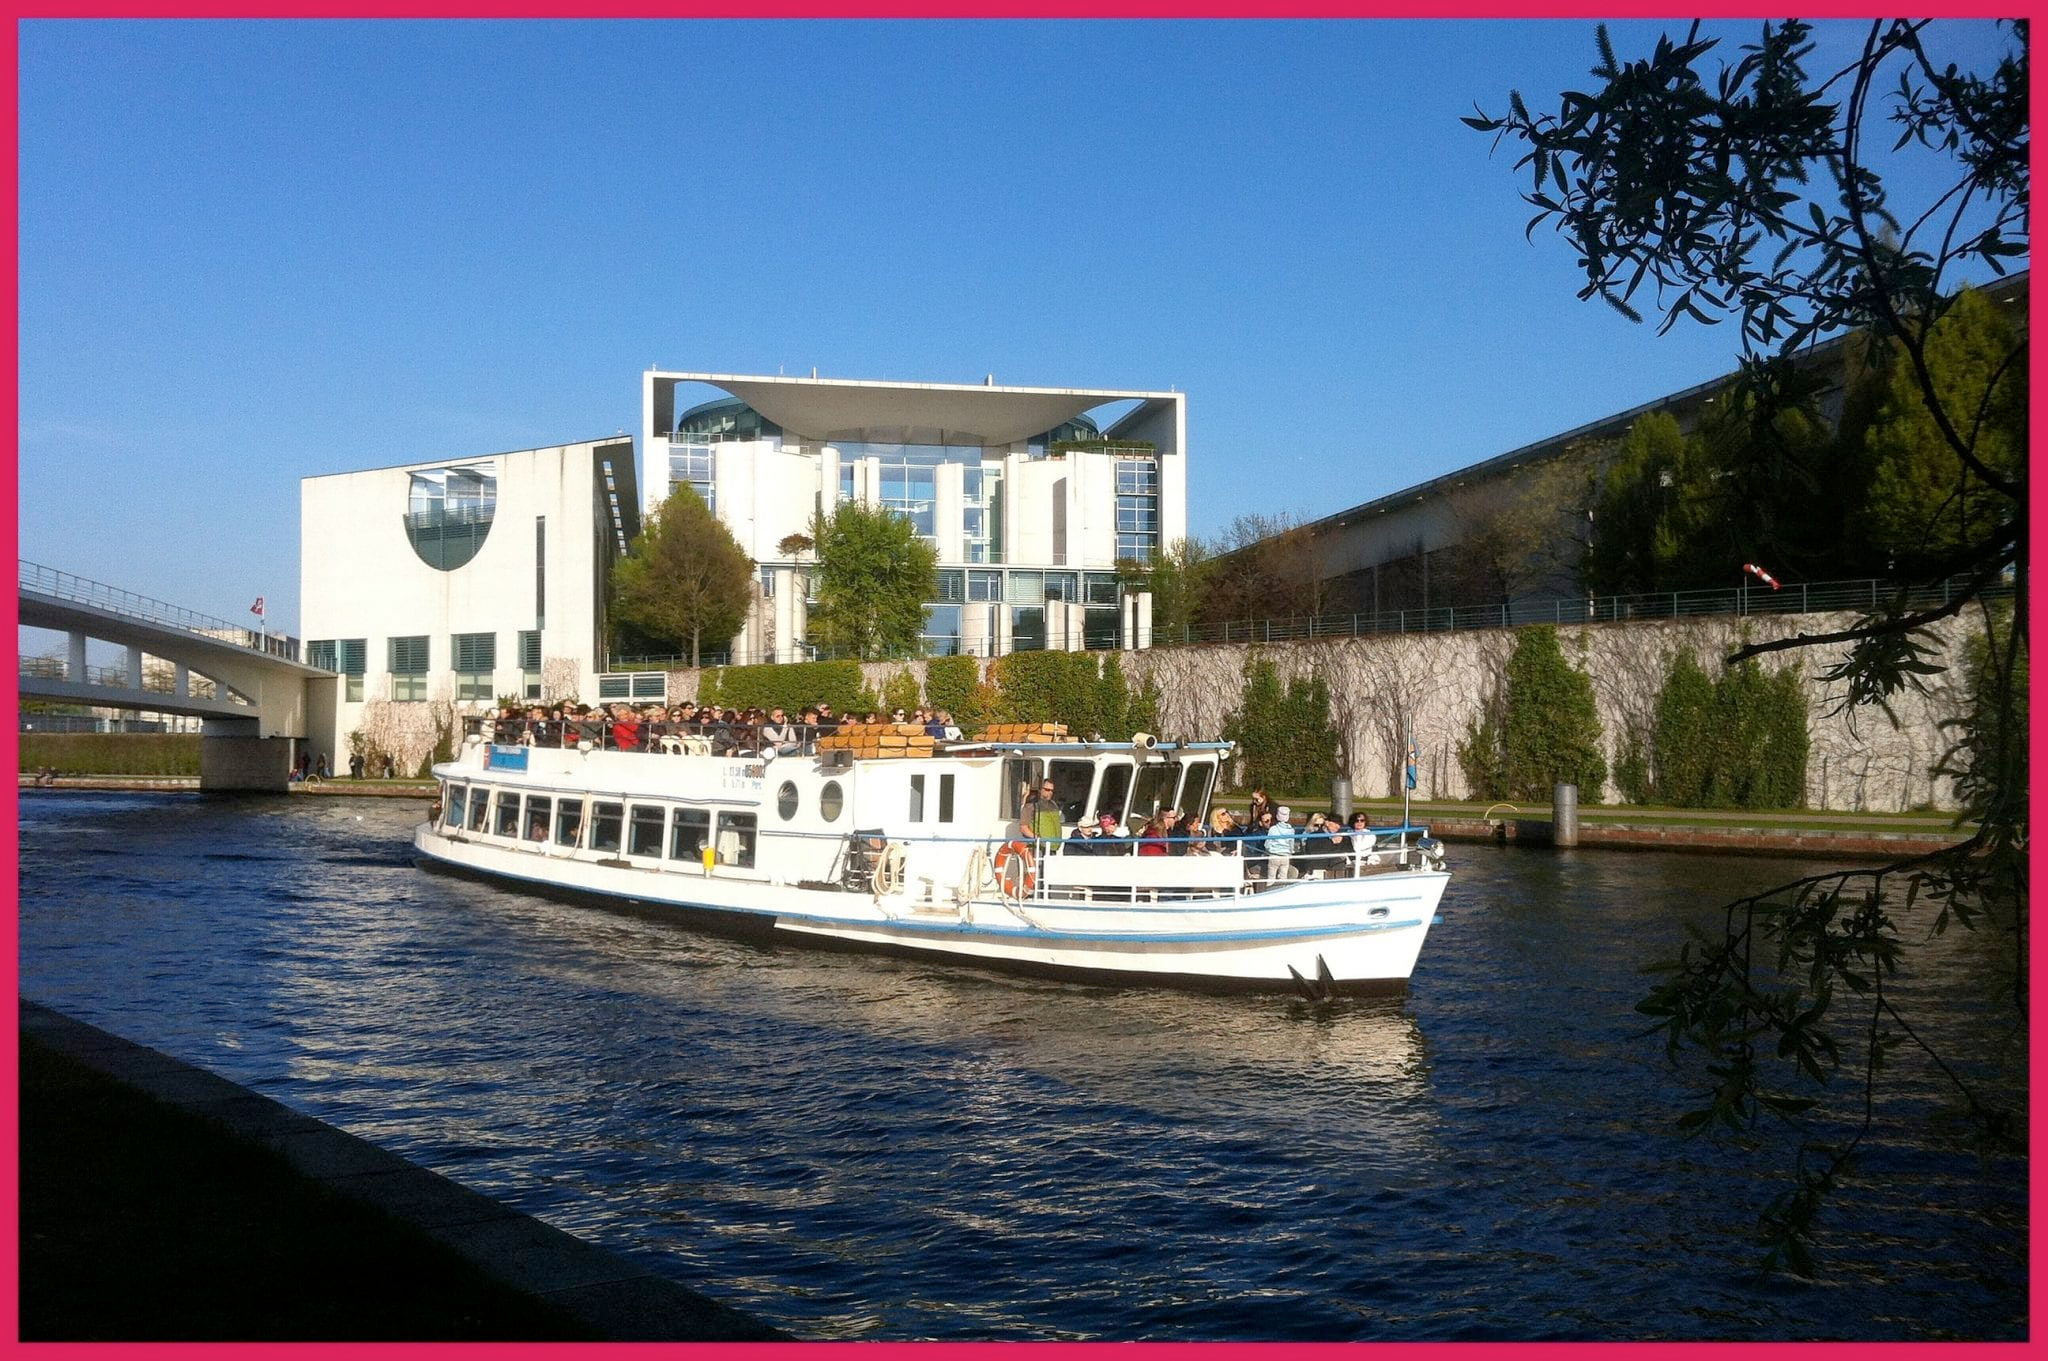 Berlin Spree River Cruise - Bundeskanzleramt